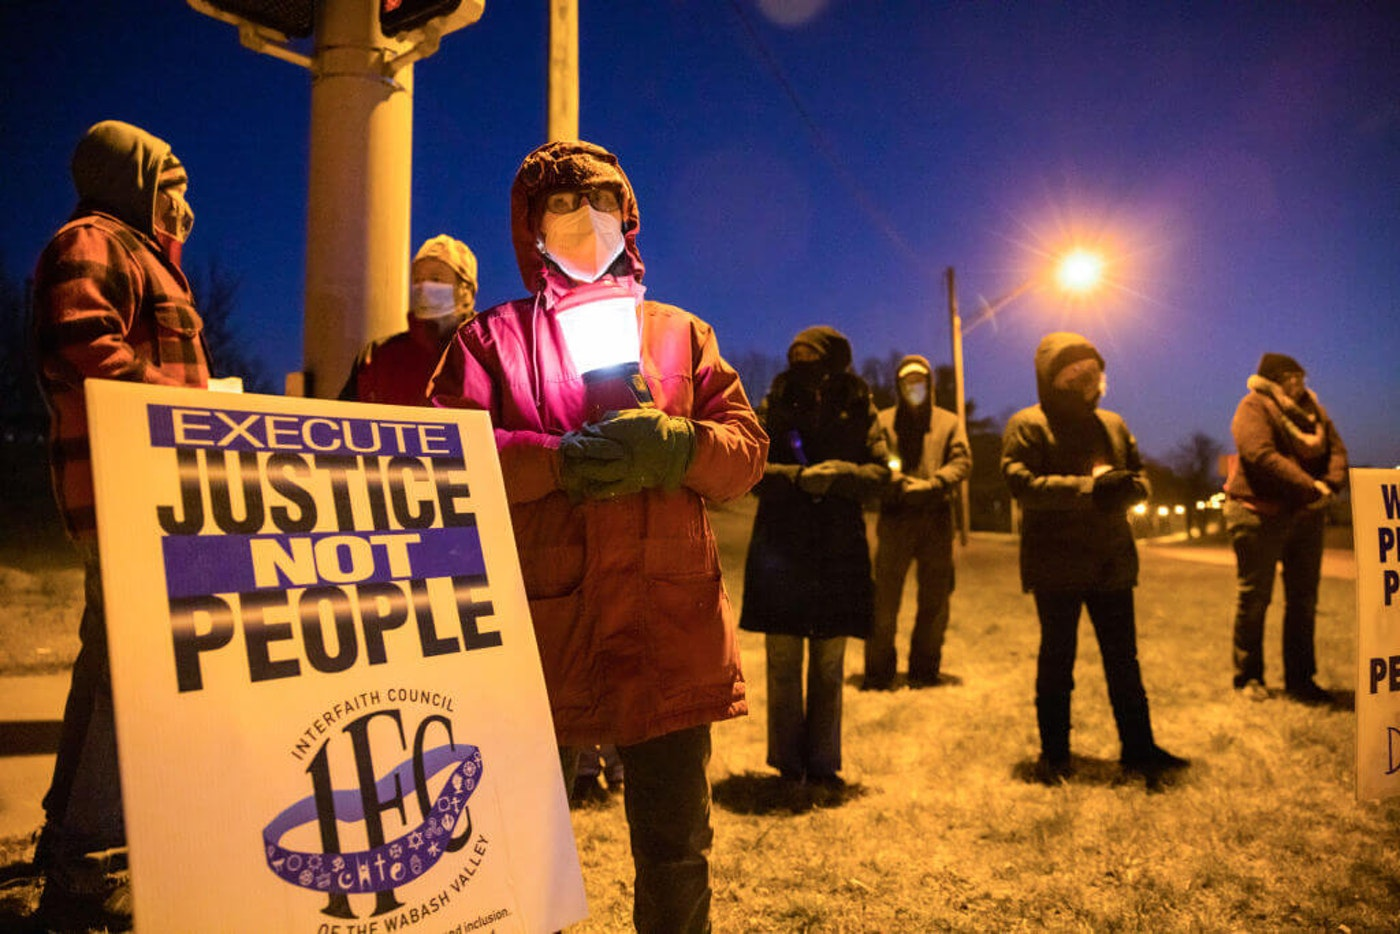 BLOOMINGTON, INDIANA, UNITED STATES - 2021/01/12: Bloomington anti-death-penalty activist Glenda Breeden holds a lamp while protesting against the execution of Lisa Montgomery, and two others, which are scheduled at Terre Haute Federal Prison this week. Montgomery was to be put to death on Tuesday. United States president Donald Trump's administration has sped up the execution of prisoners on death row during the last months of his presidency. Montgomery will be the first woman to be executed by the federal government in almost 70 years. (Photo by Jeremy Hogan/SOPA Images/LightRocket via Getty Images)